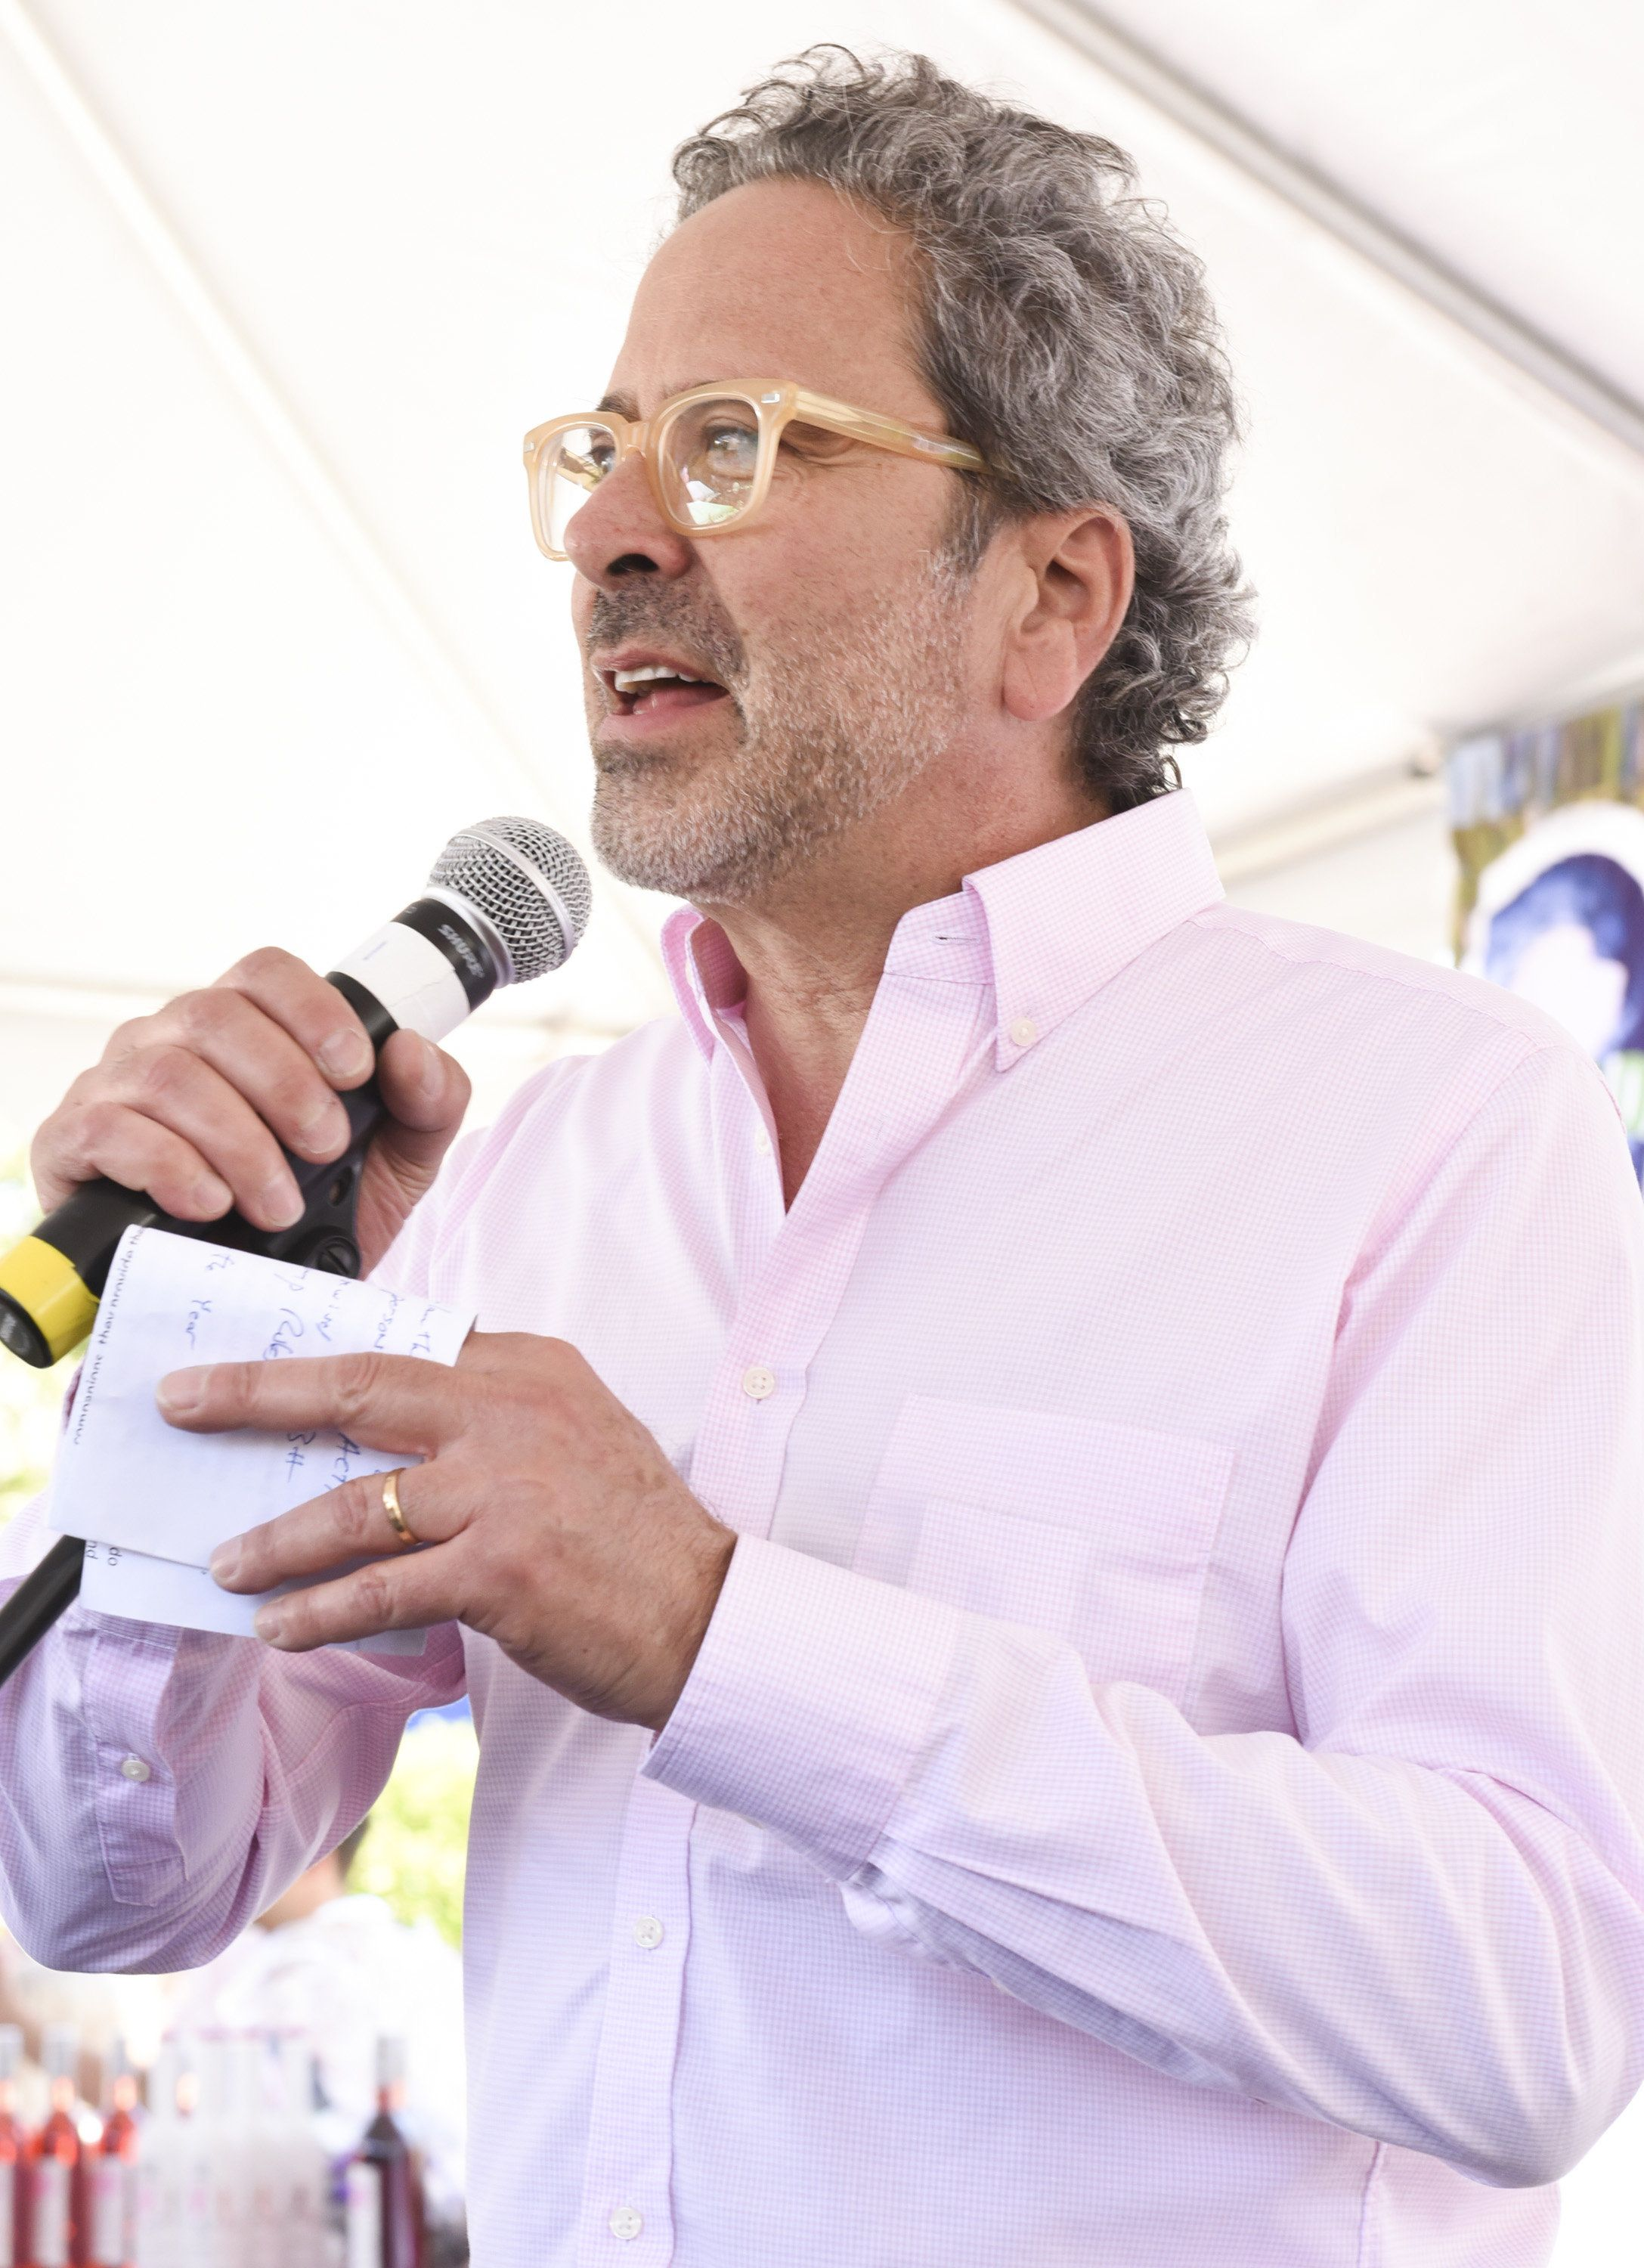 WEST HOLLYWOOD, CA - MAY 22:  Assemblymember Richard Bloom speaks at World Dog Day on May 22, 2016 in West Hollywood, California.  (Photo by Rodin Eckenroth/WireImage)